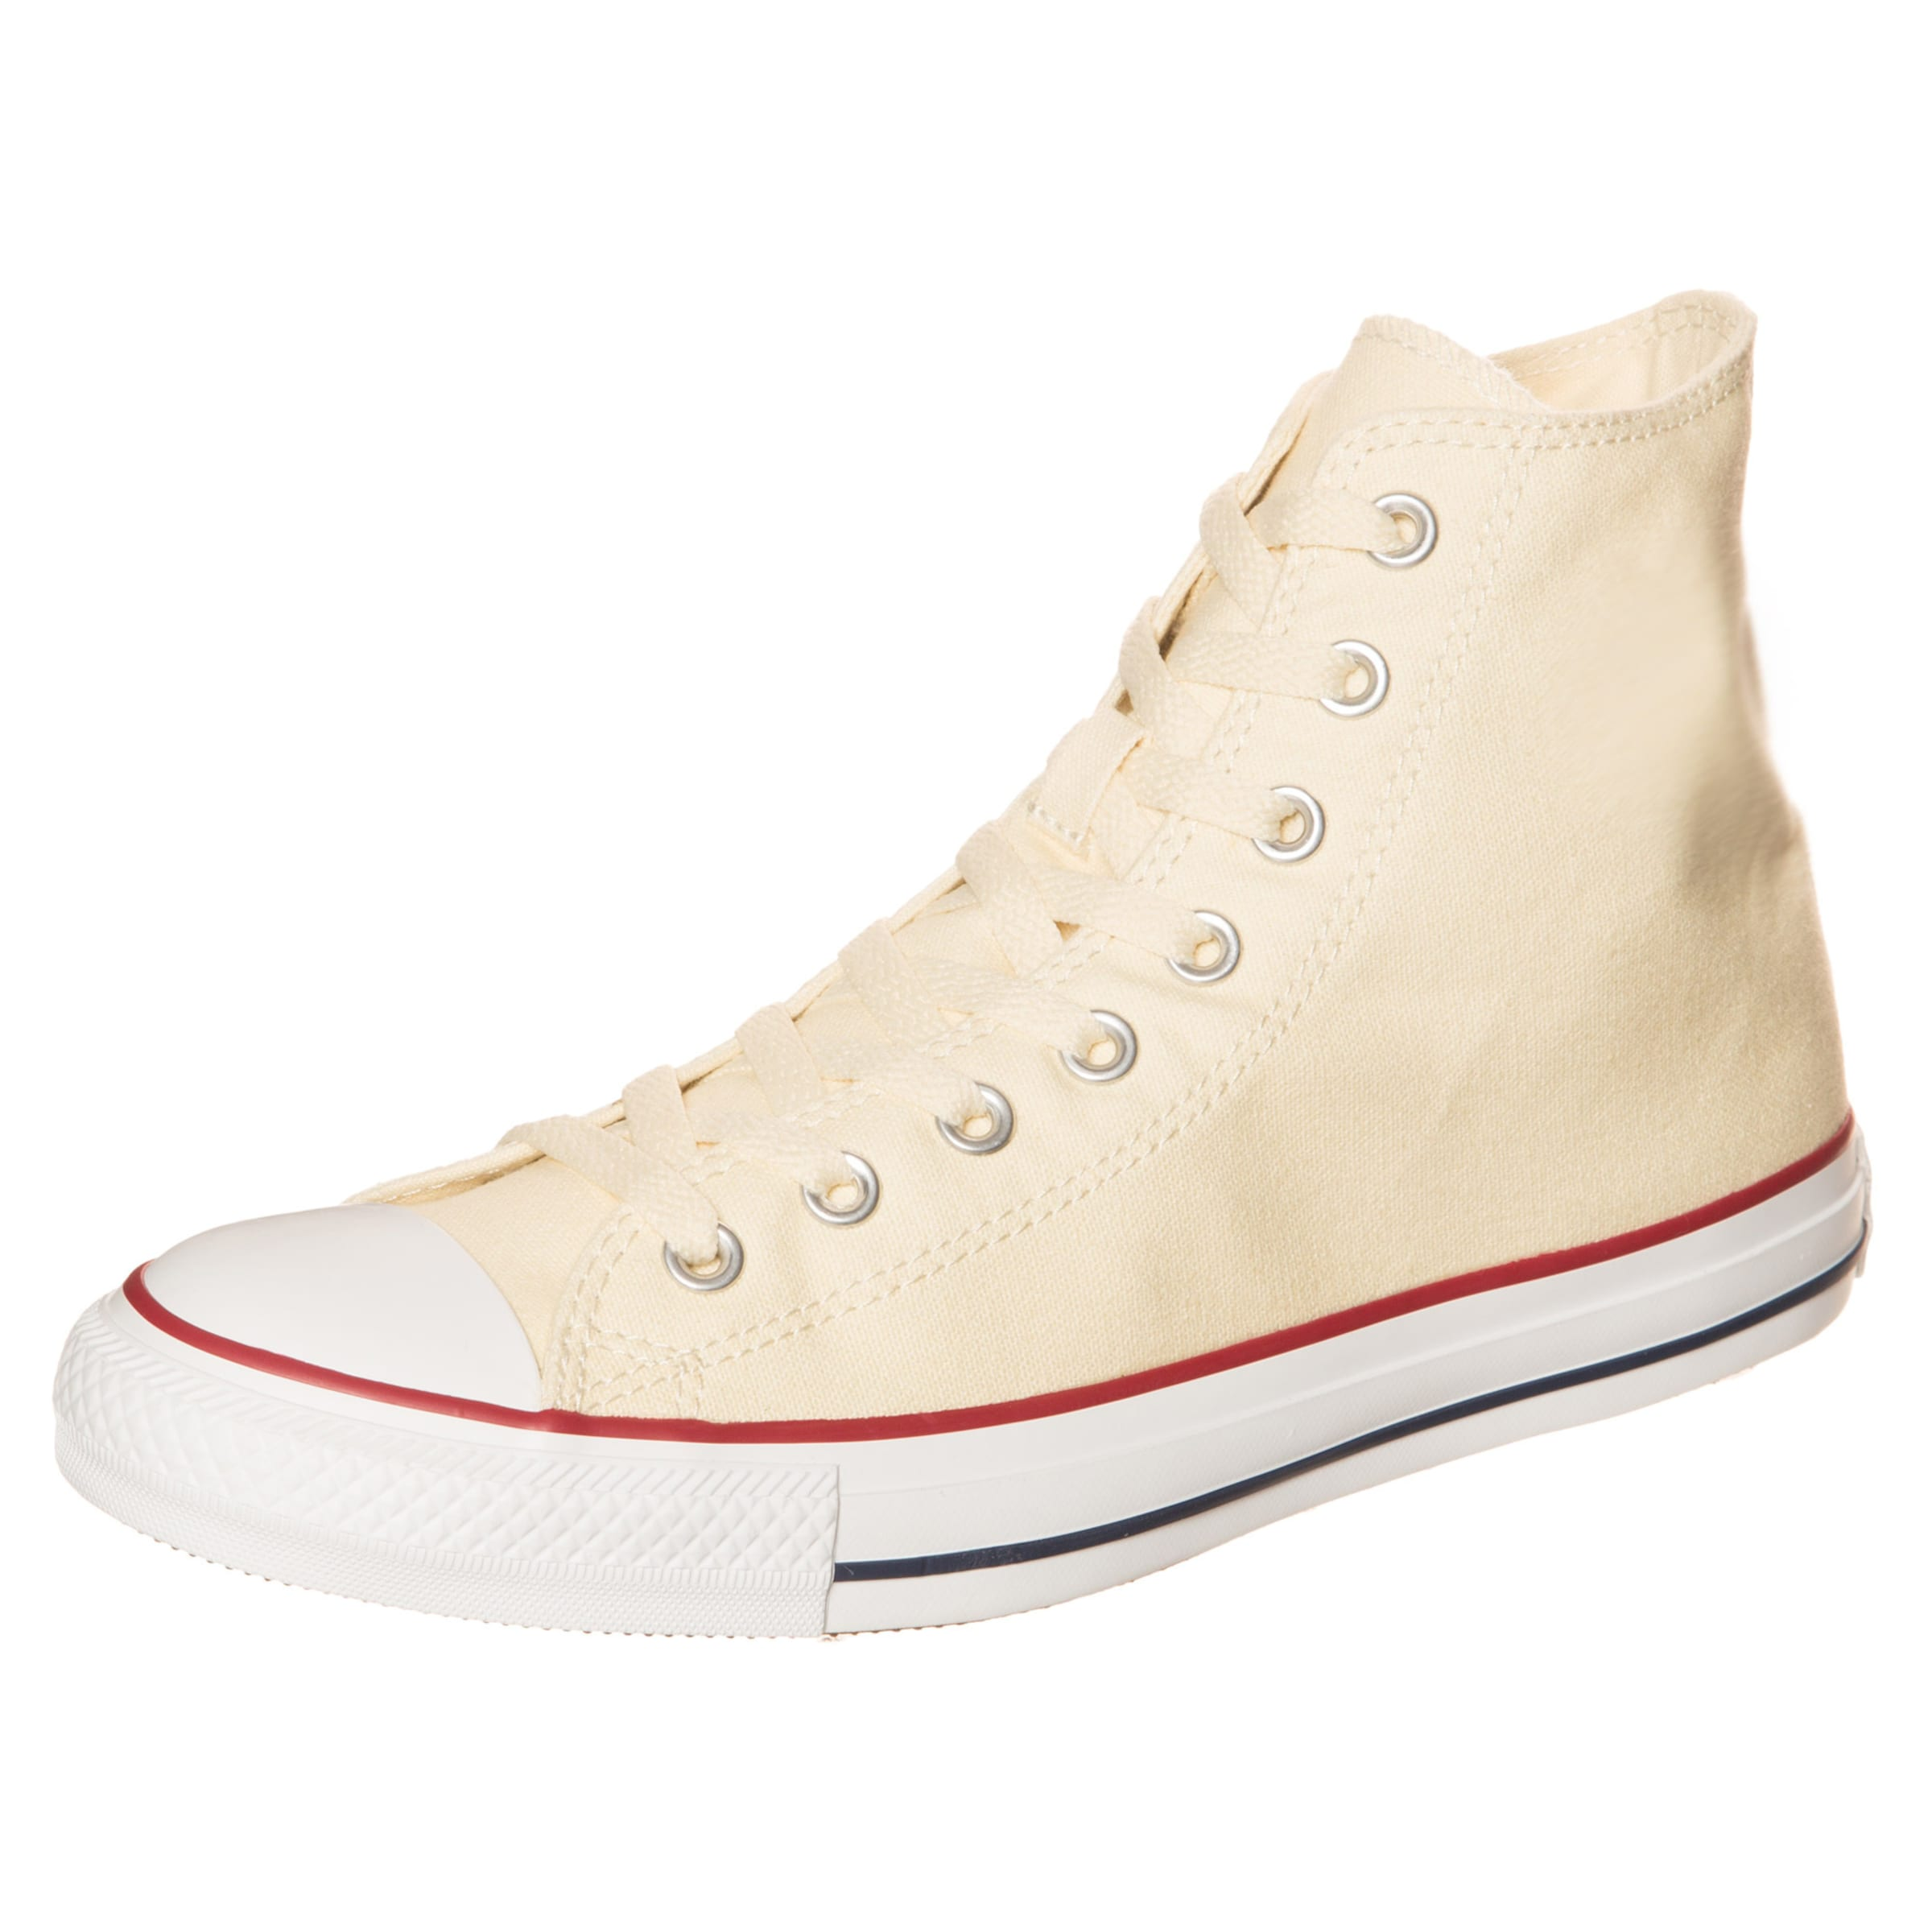 CONVERSE | Chuck Taylor All Star High Sneaker